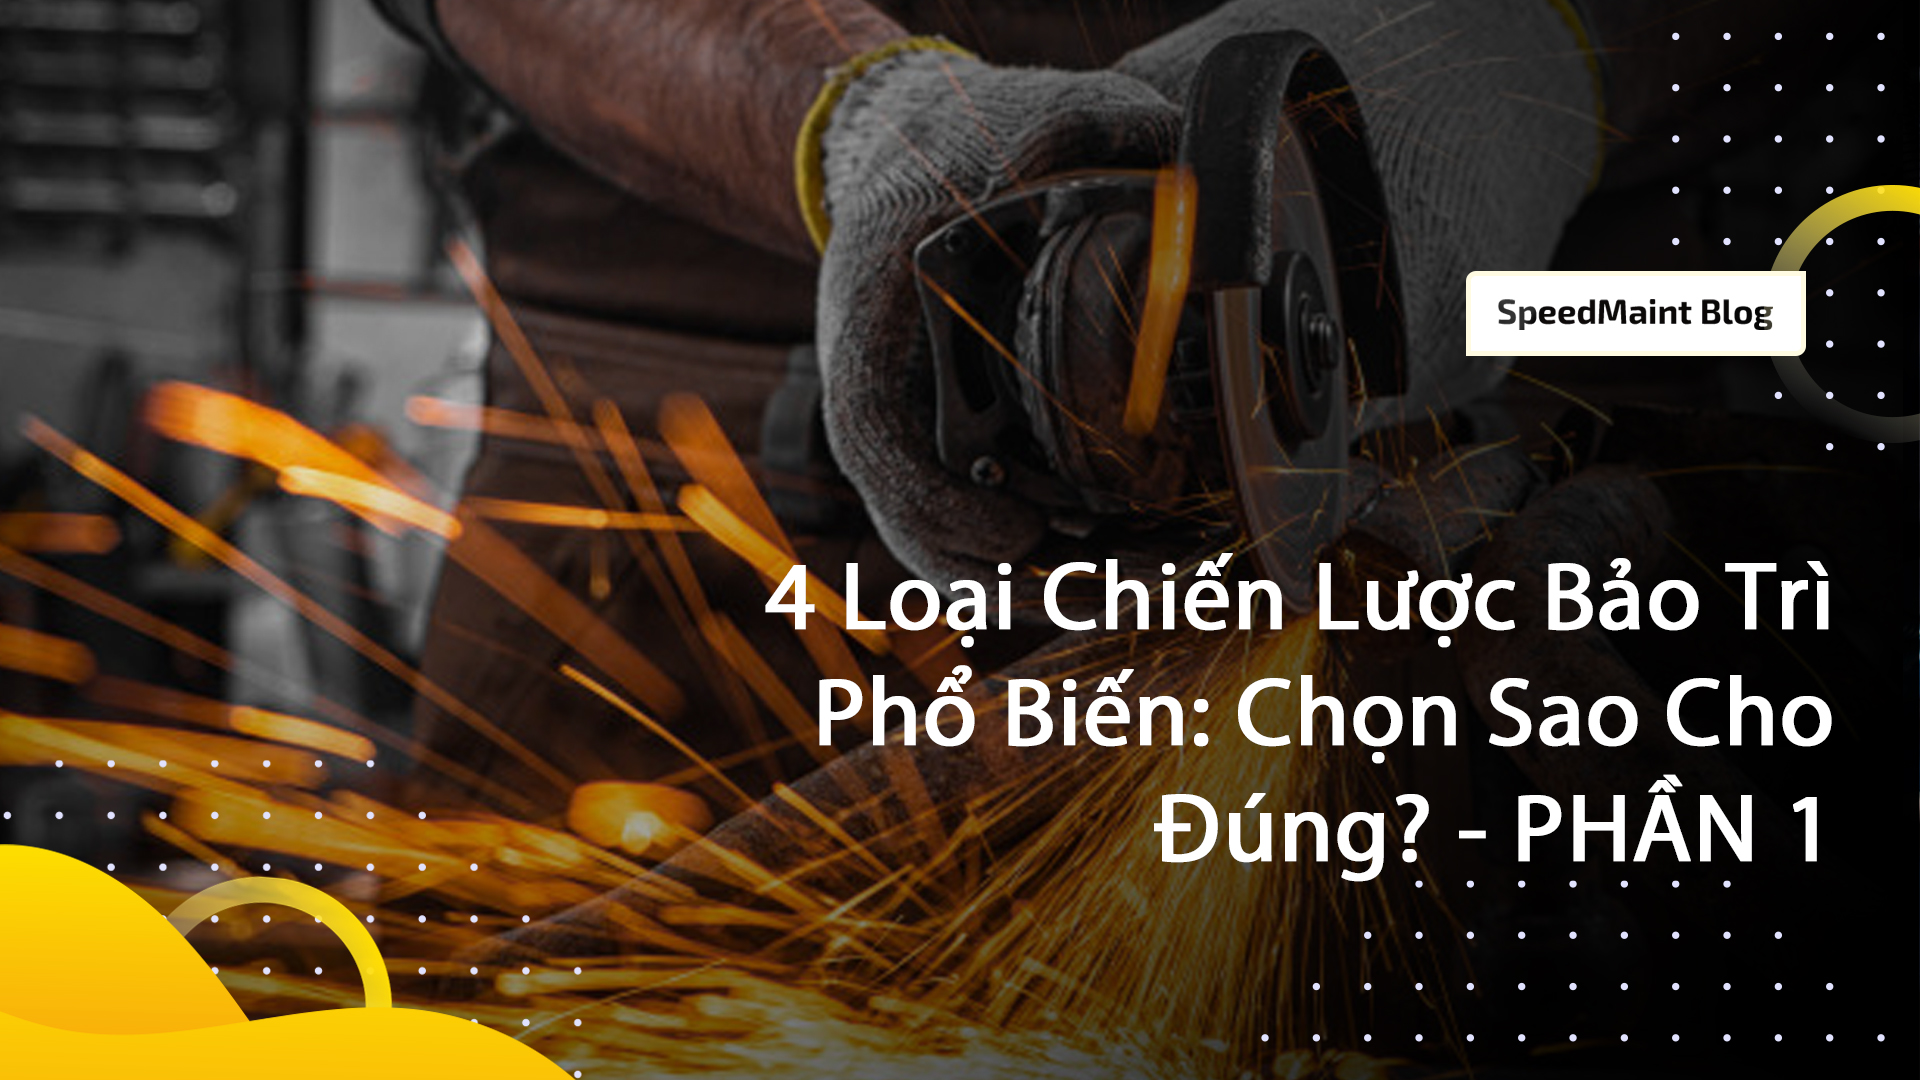 speed-maint-4-loai-chien-luoc-bao-tri